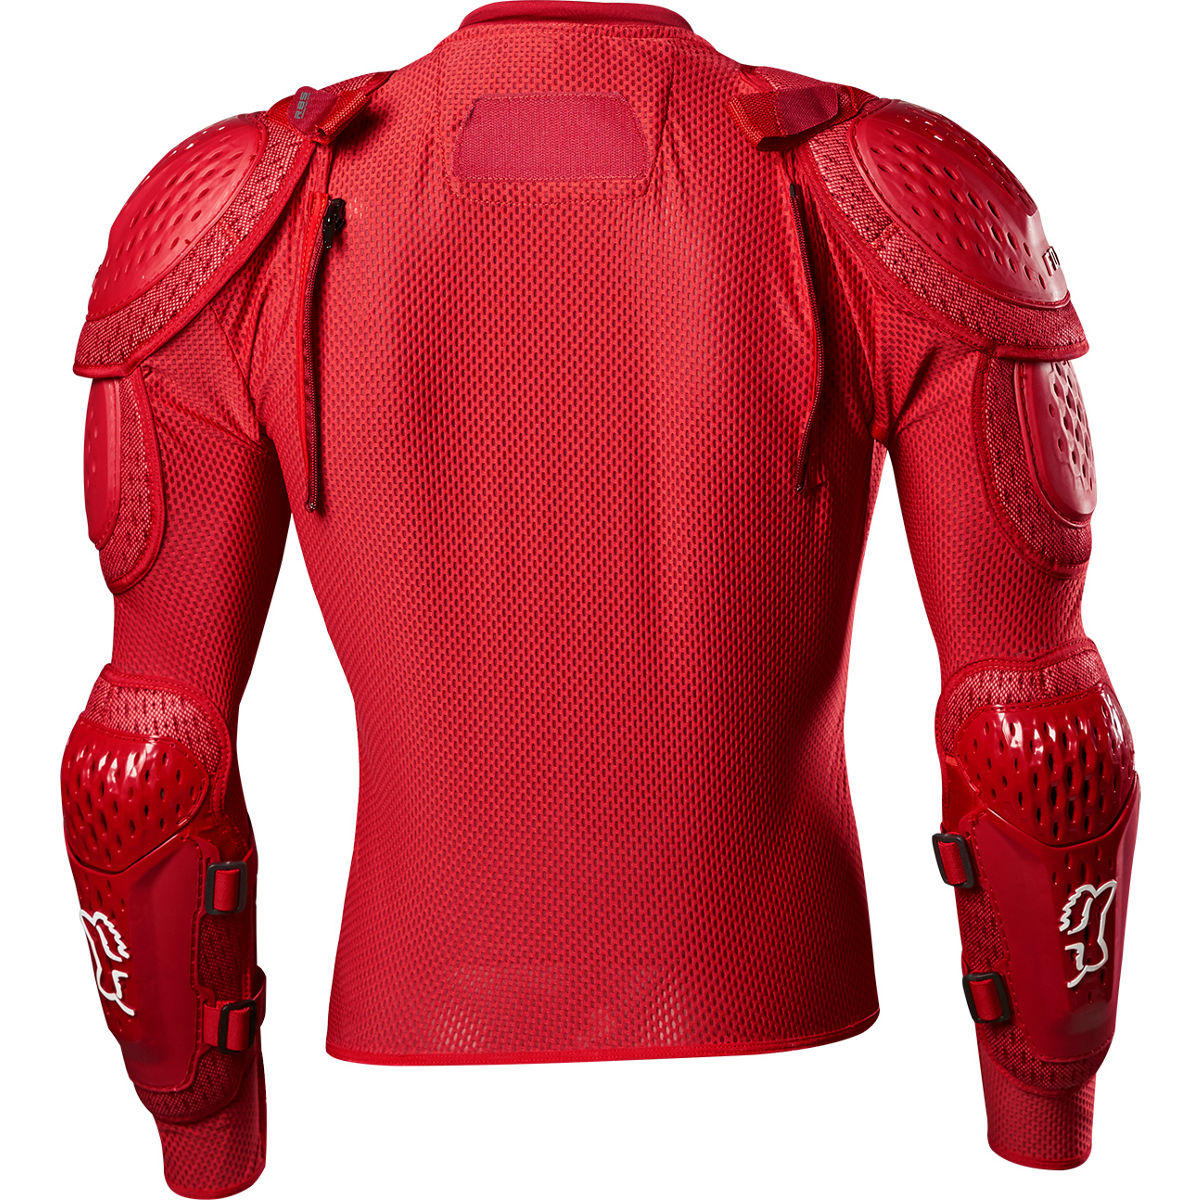 24018-122 2020 Fox Racing Titan Sport Protection Jacket Flame Red Gilet de Protection Protektorjacke Beschermingsjas Harnas